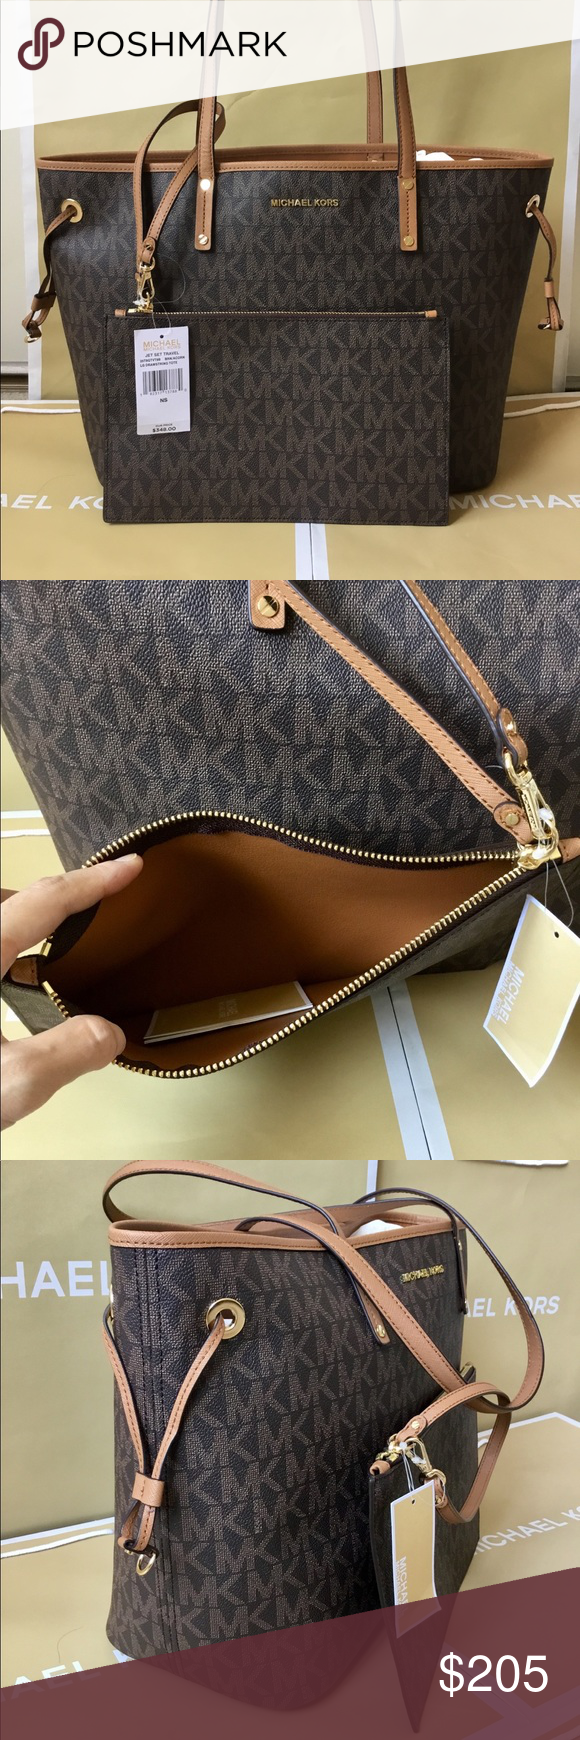 48186a999dcb 🌿Michael Kors Jet Set Travel Large Drawstring Bag ✅ Style  35T8GTVT9B ✅  Composition  PVC Coated Twill ✅ Details  MK signature coated twill with  acorn ...